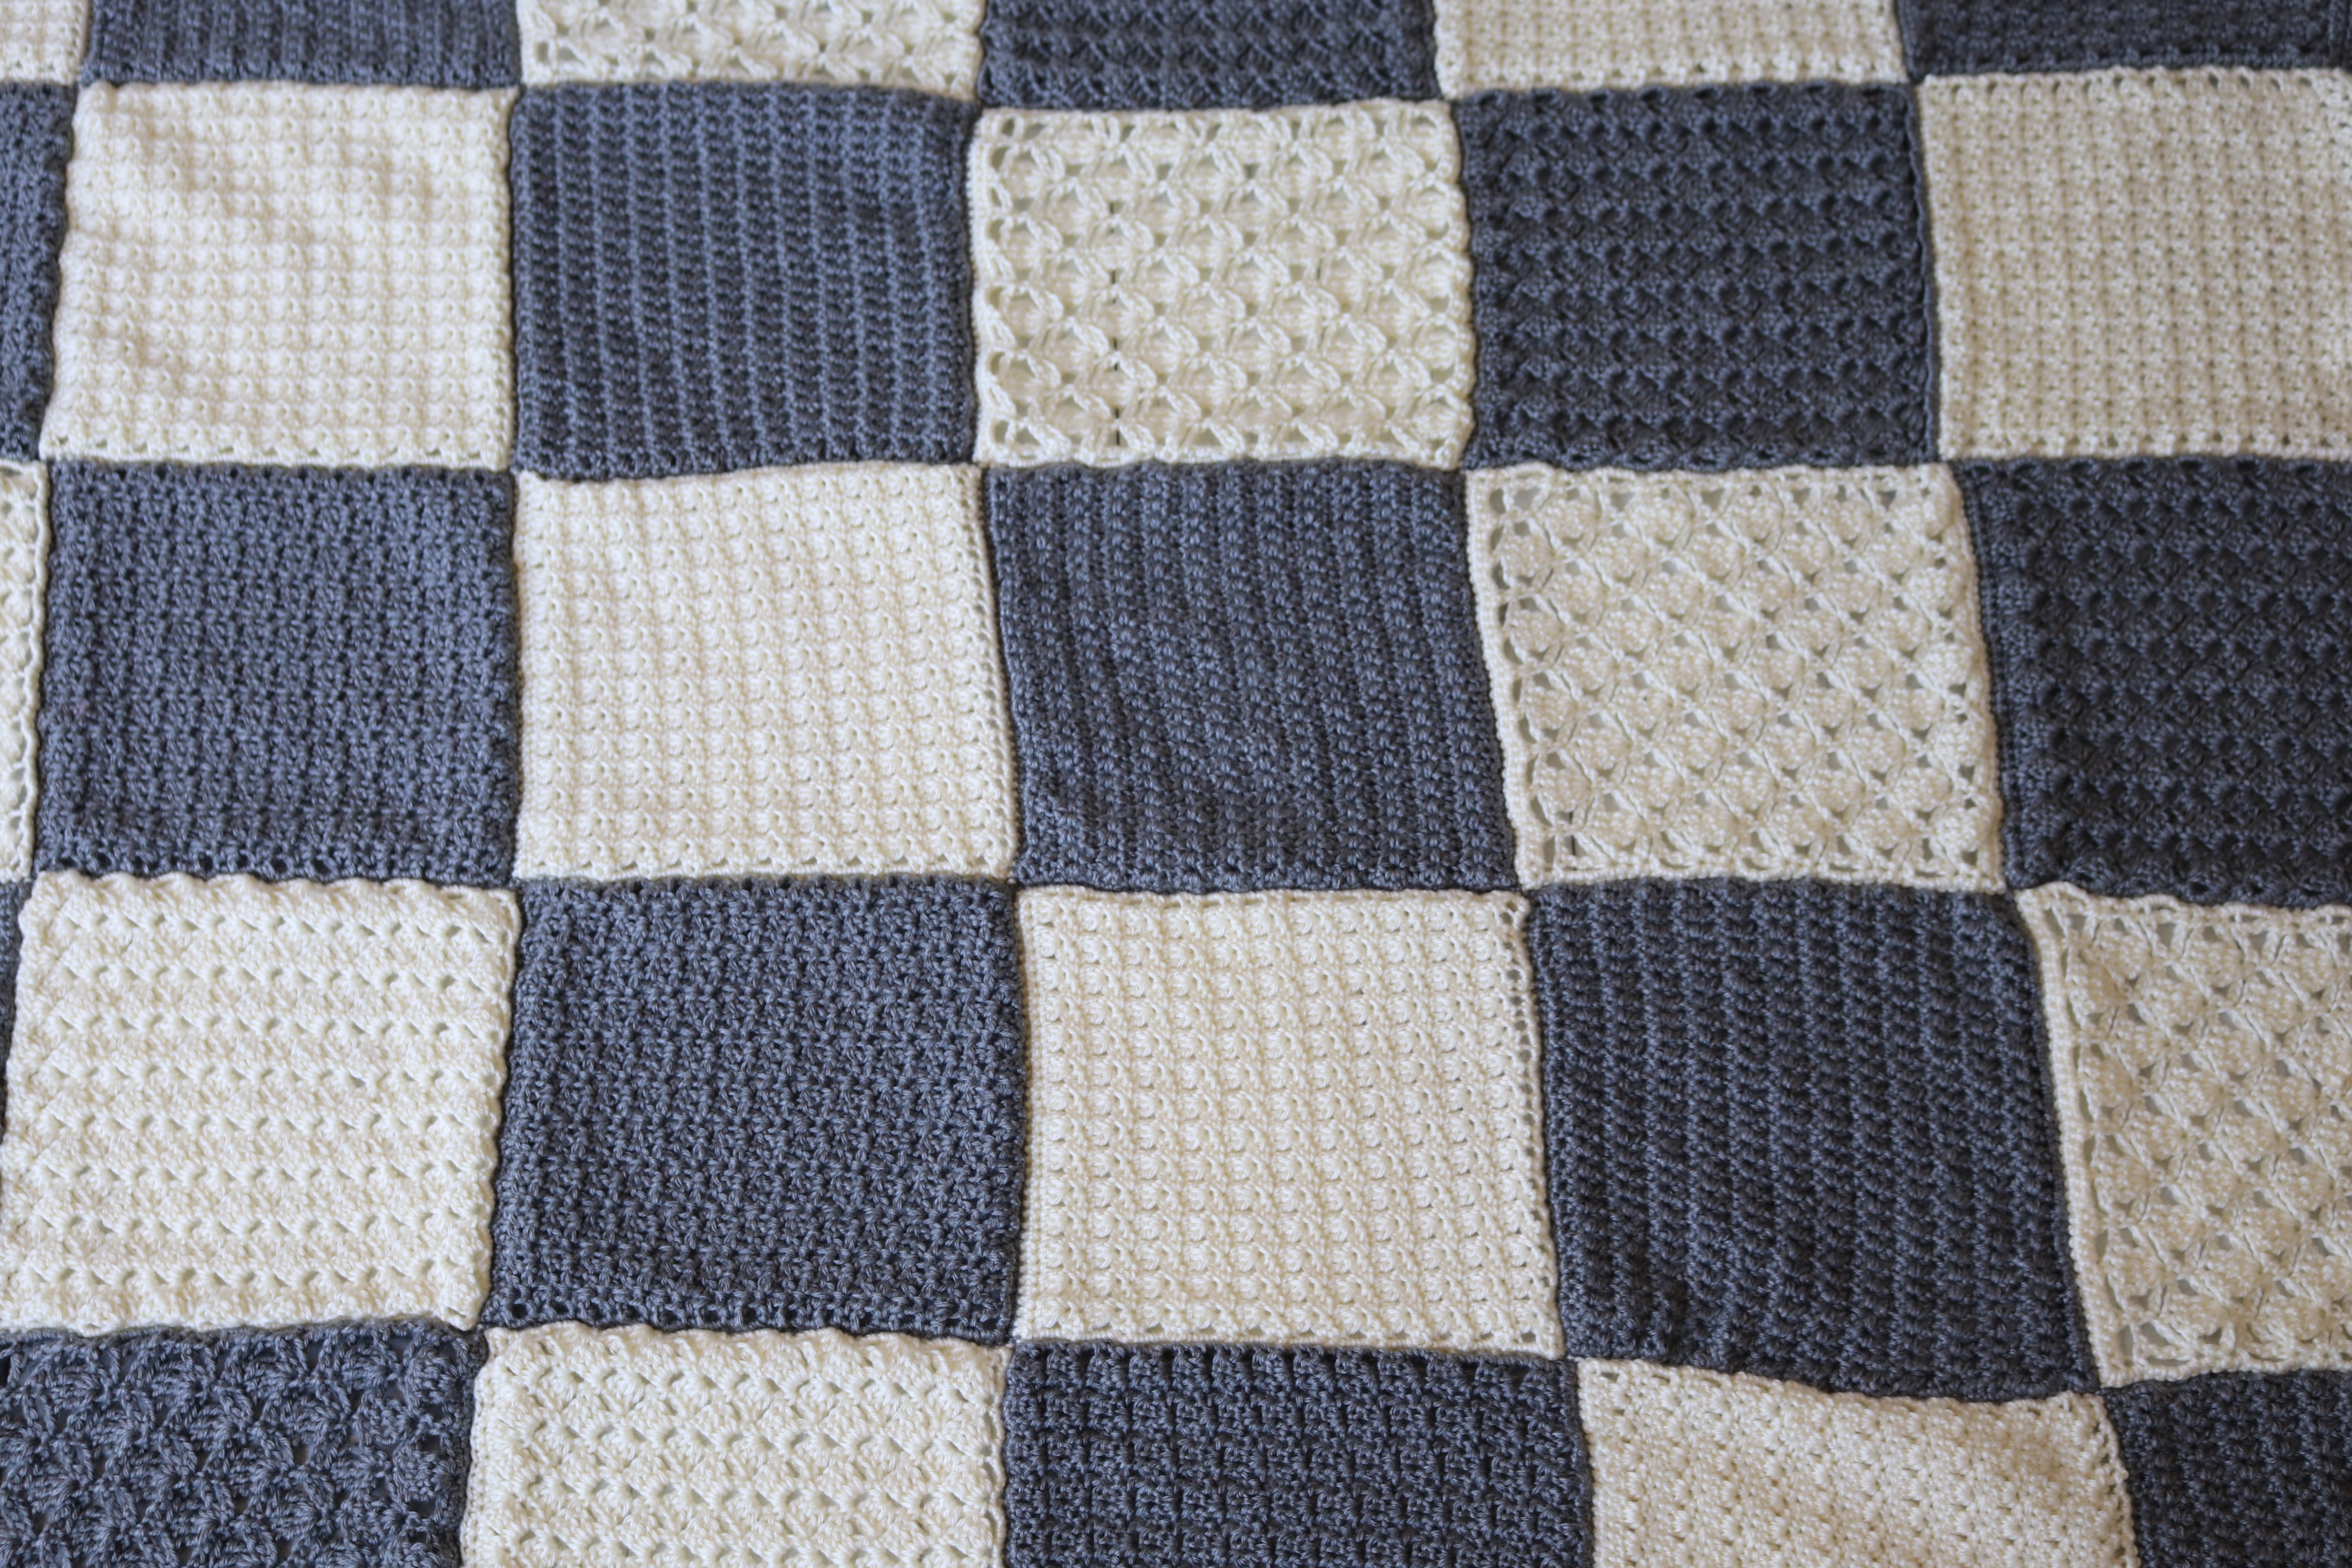 Crochet Blanket Pattern3